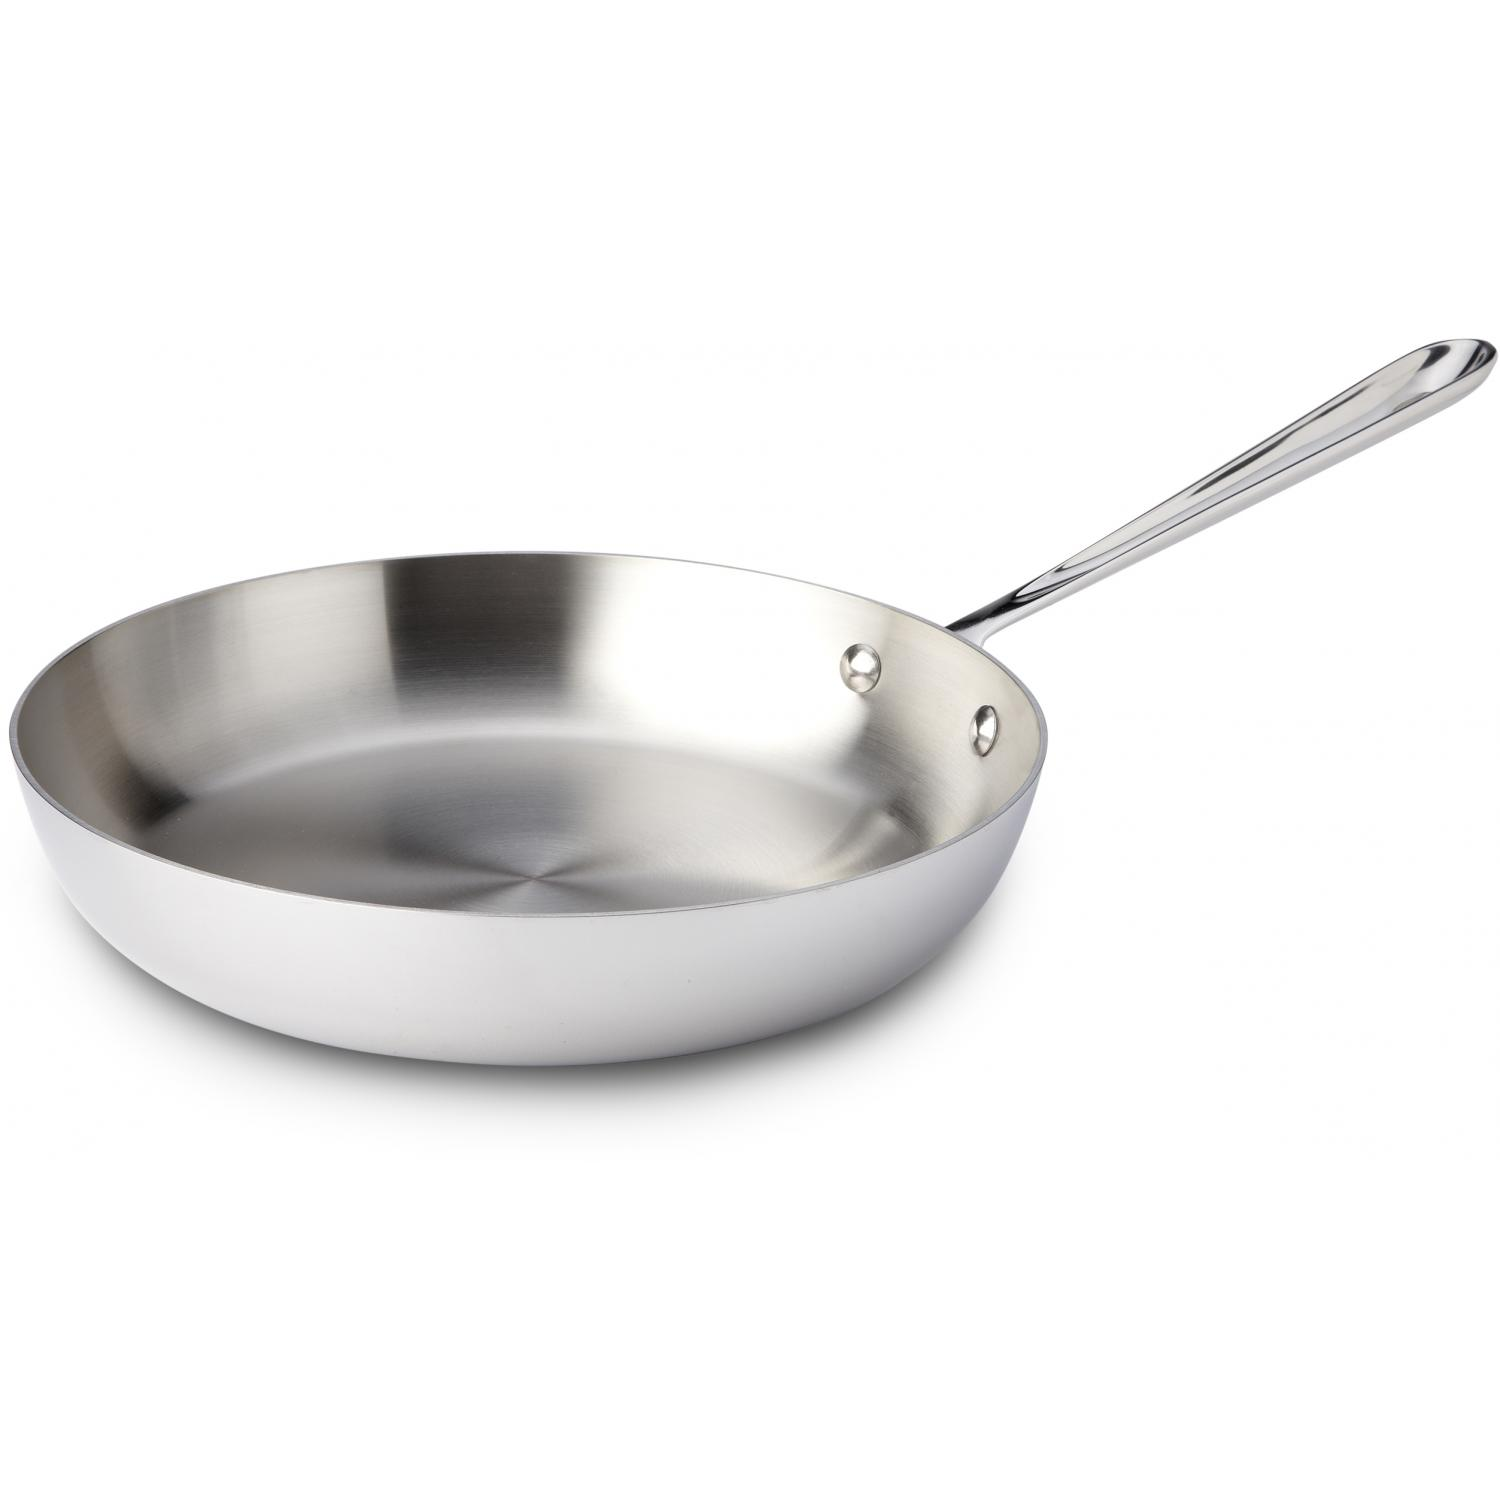 All-Clad Stainless 11-Inch French Skillet